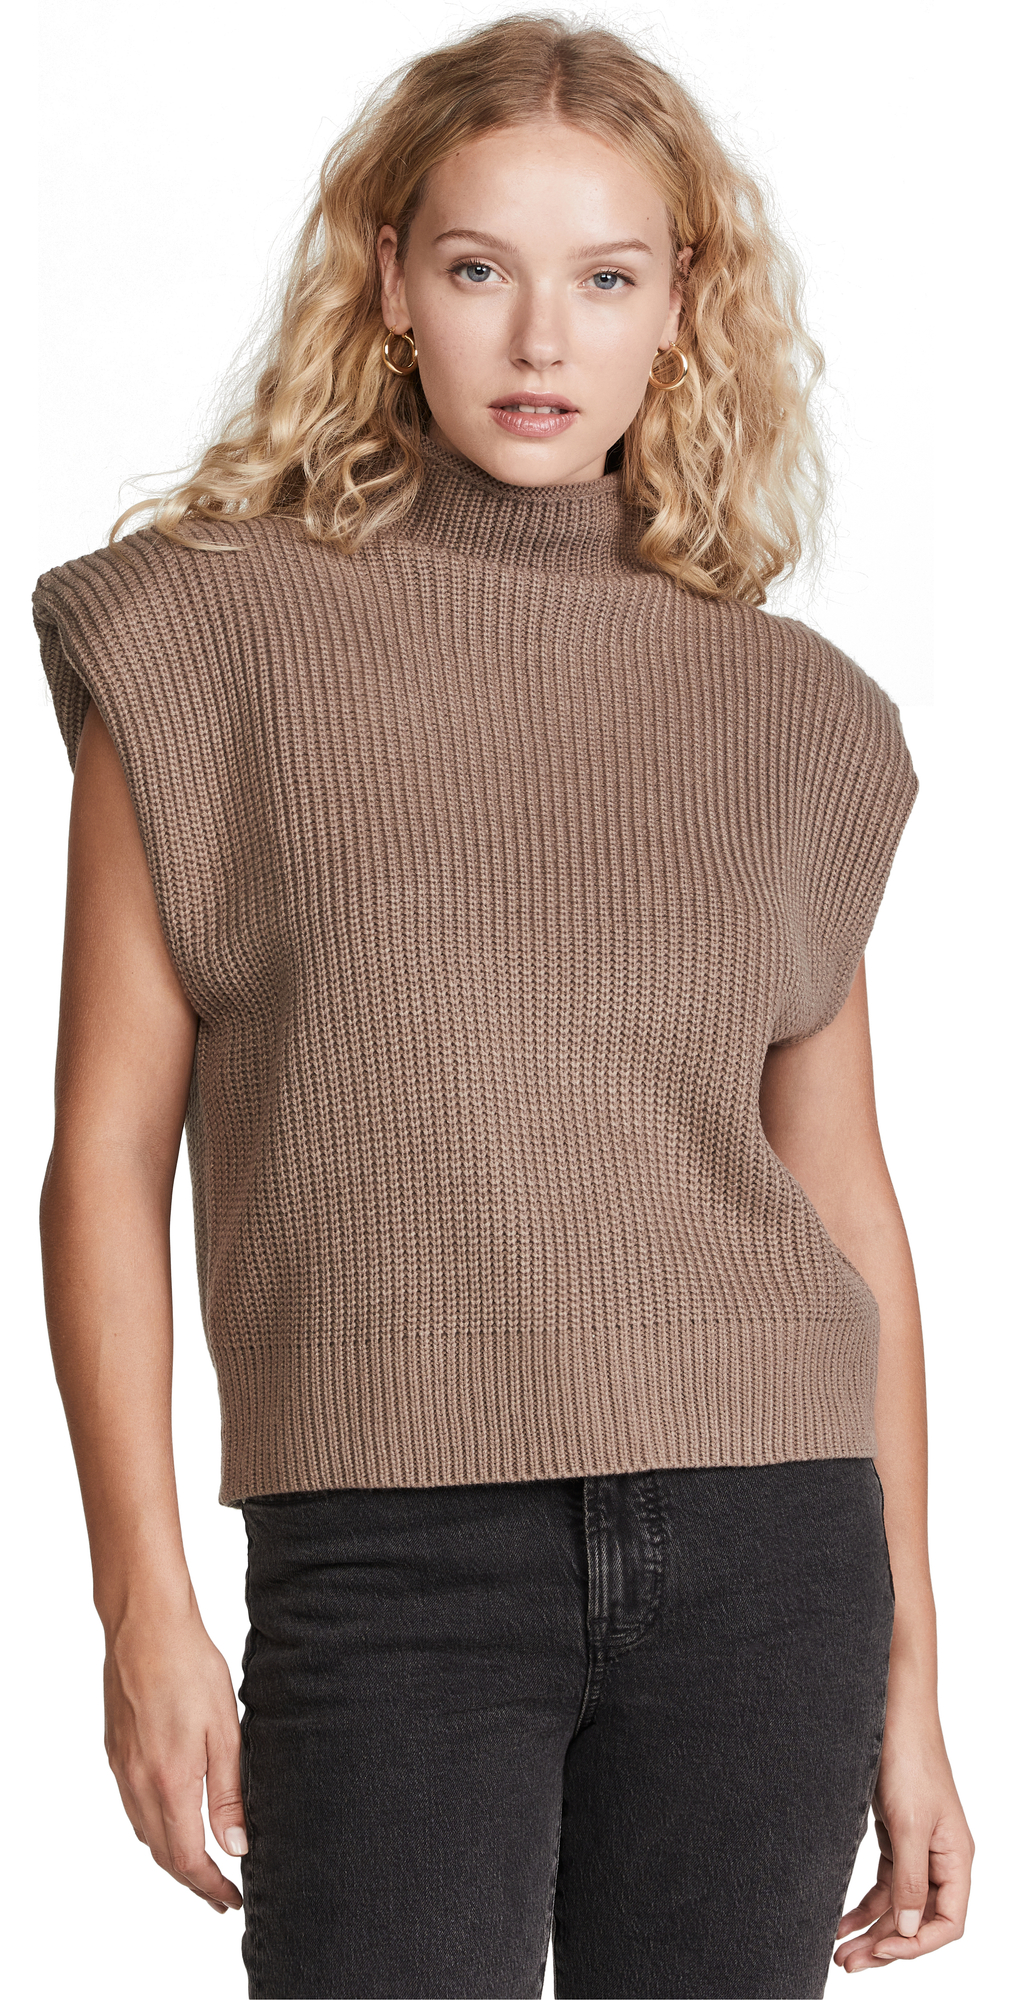 Sweater Pullover with Shoulder Pads